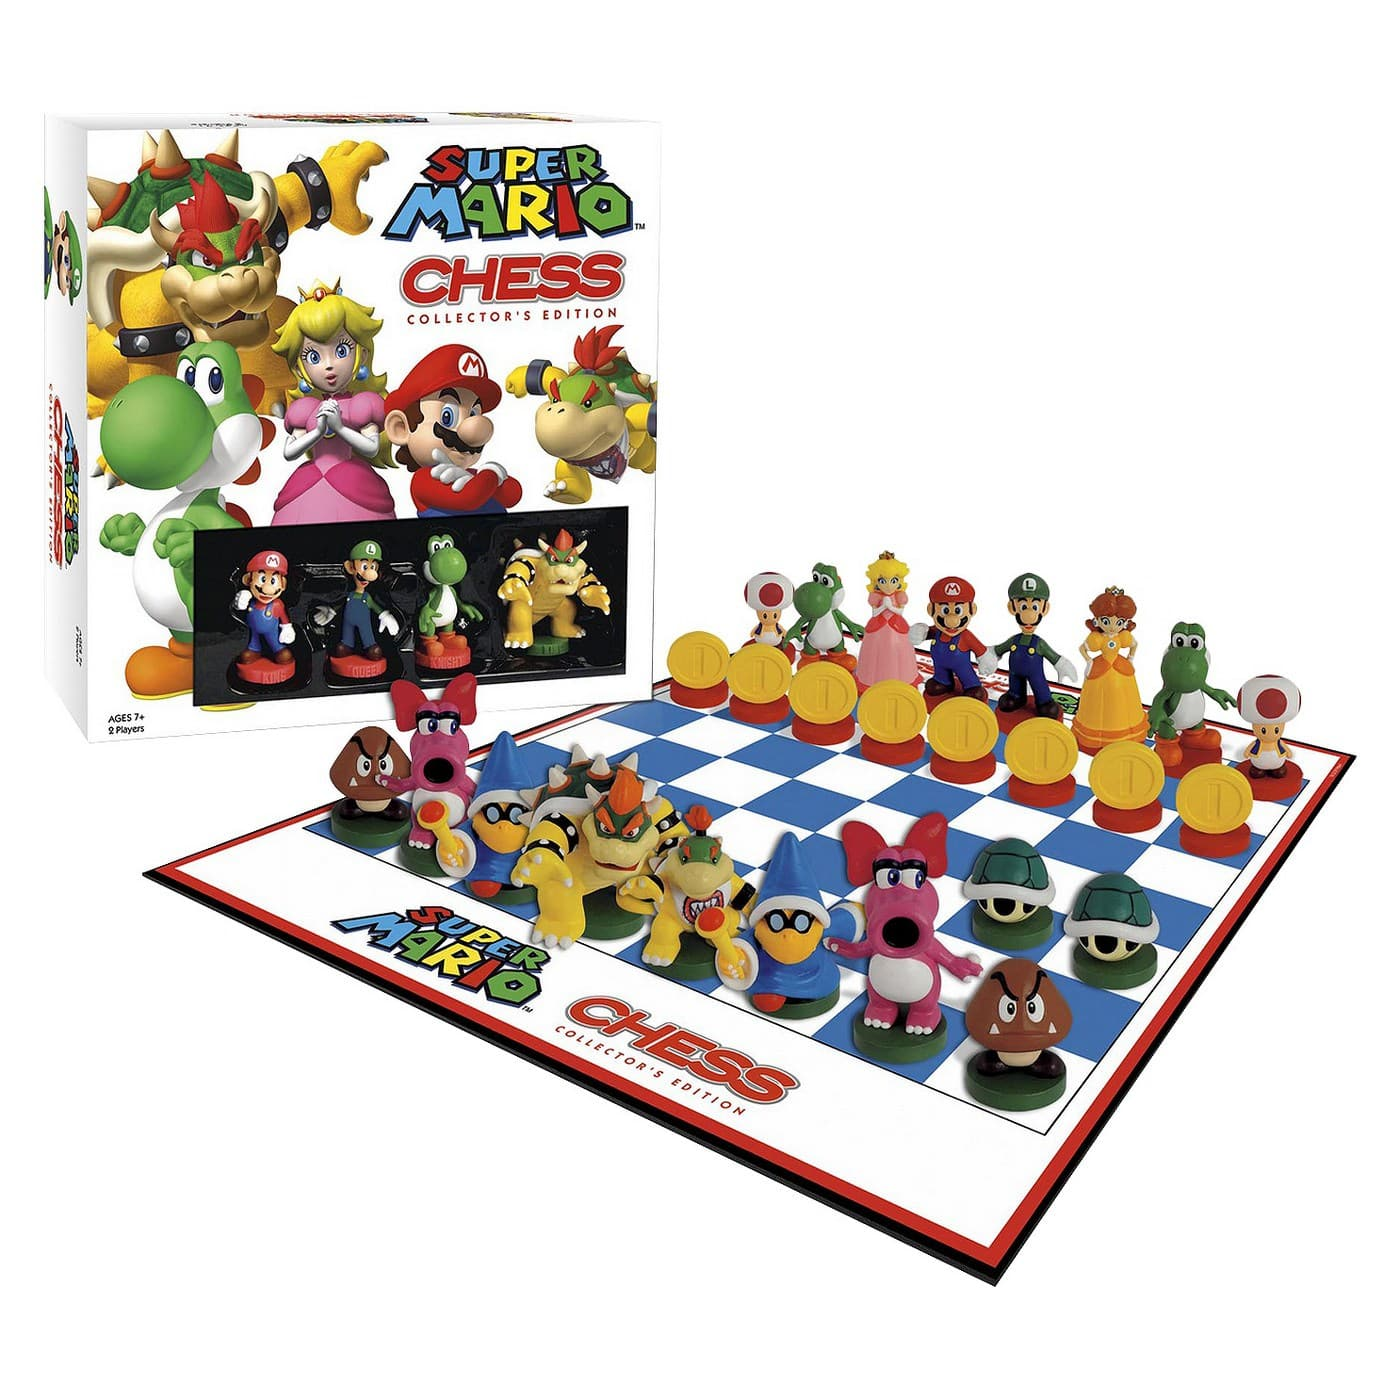 Target: Select Board Games, Toys and Dolls B1G1 50% Off (Super Mario Chess Collector's Edition, Forbidden Island & More) + Free Store Pickup or Free Shipping on $35